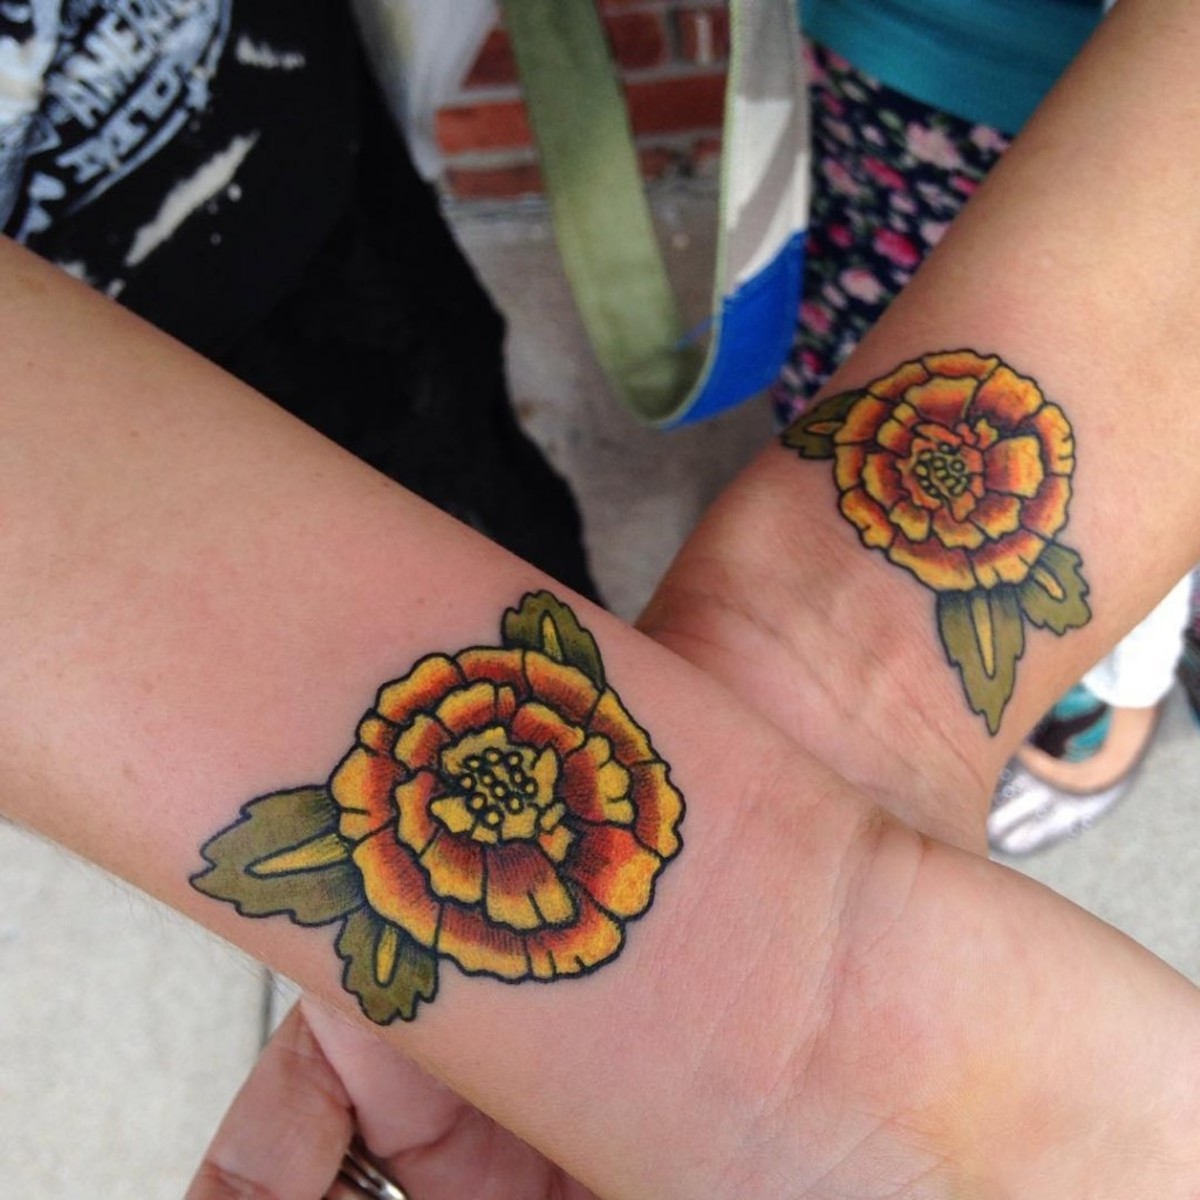 mother-daughter-tattoo-16-1024x1024